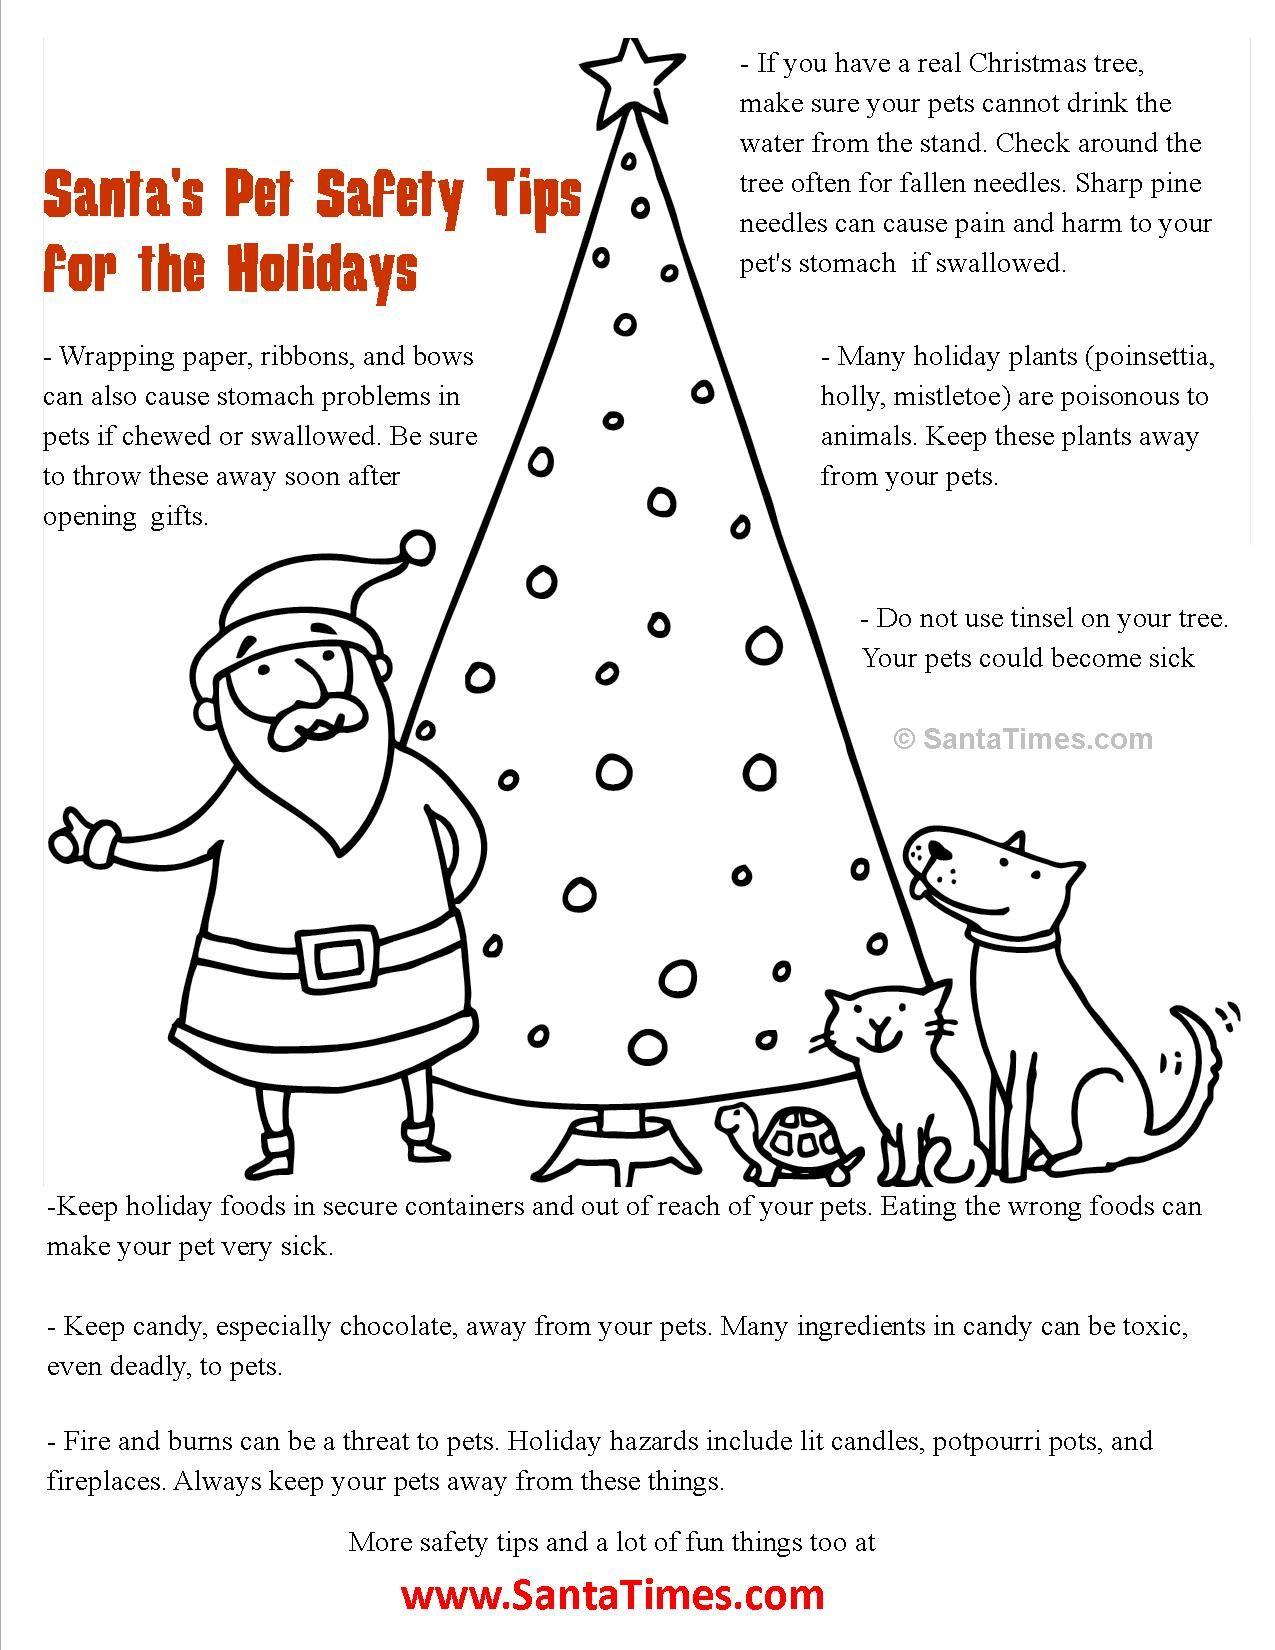 santas christmas pet safety coloring page more at wwwsanta tcom